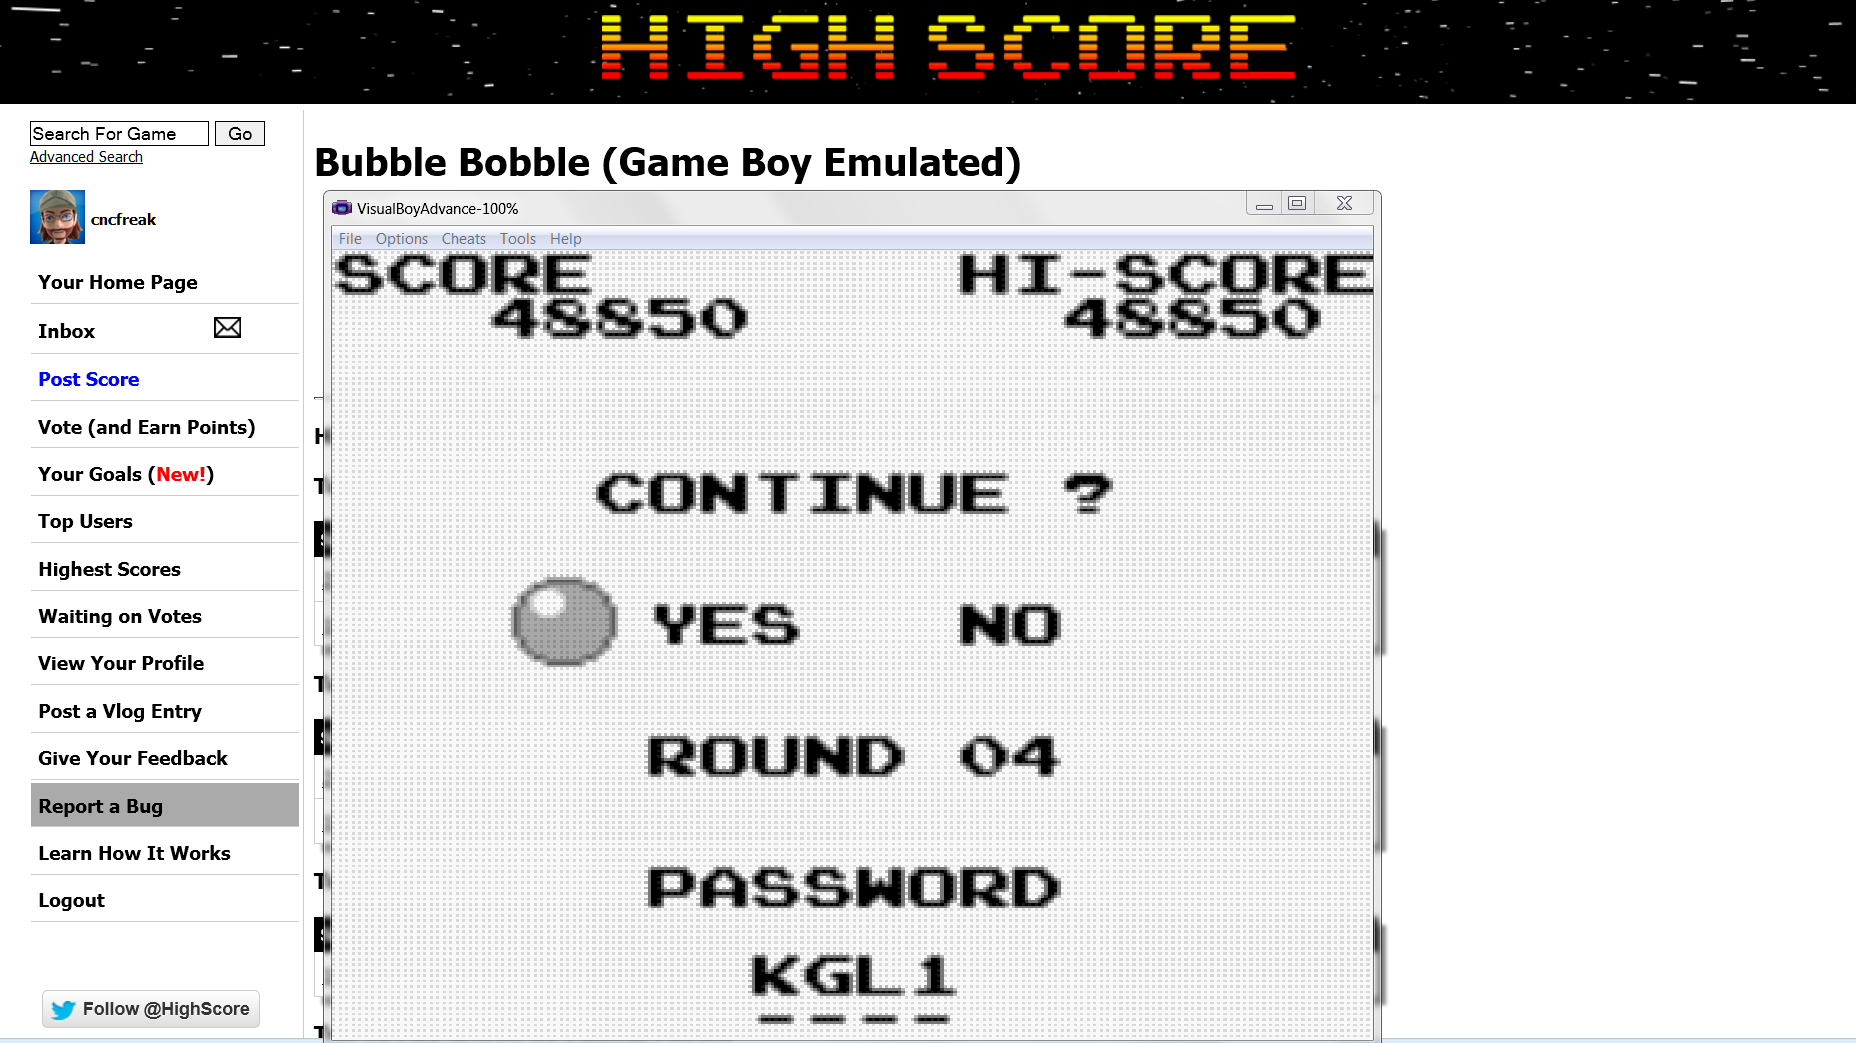 Bubble Bobble 48,850 points